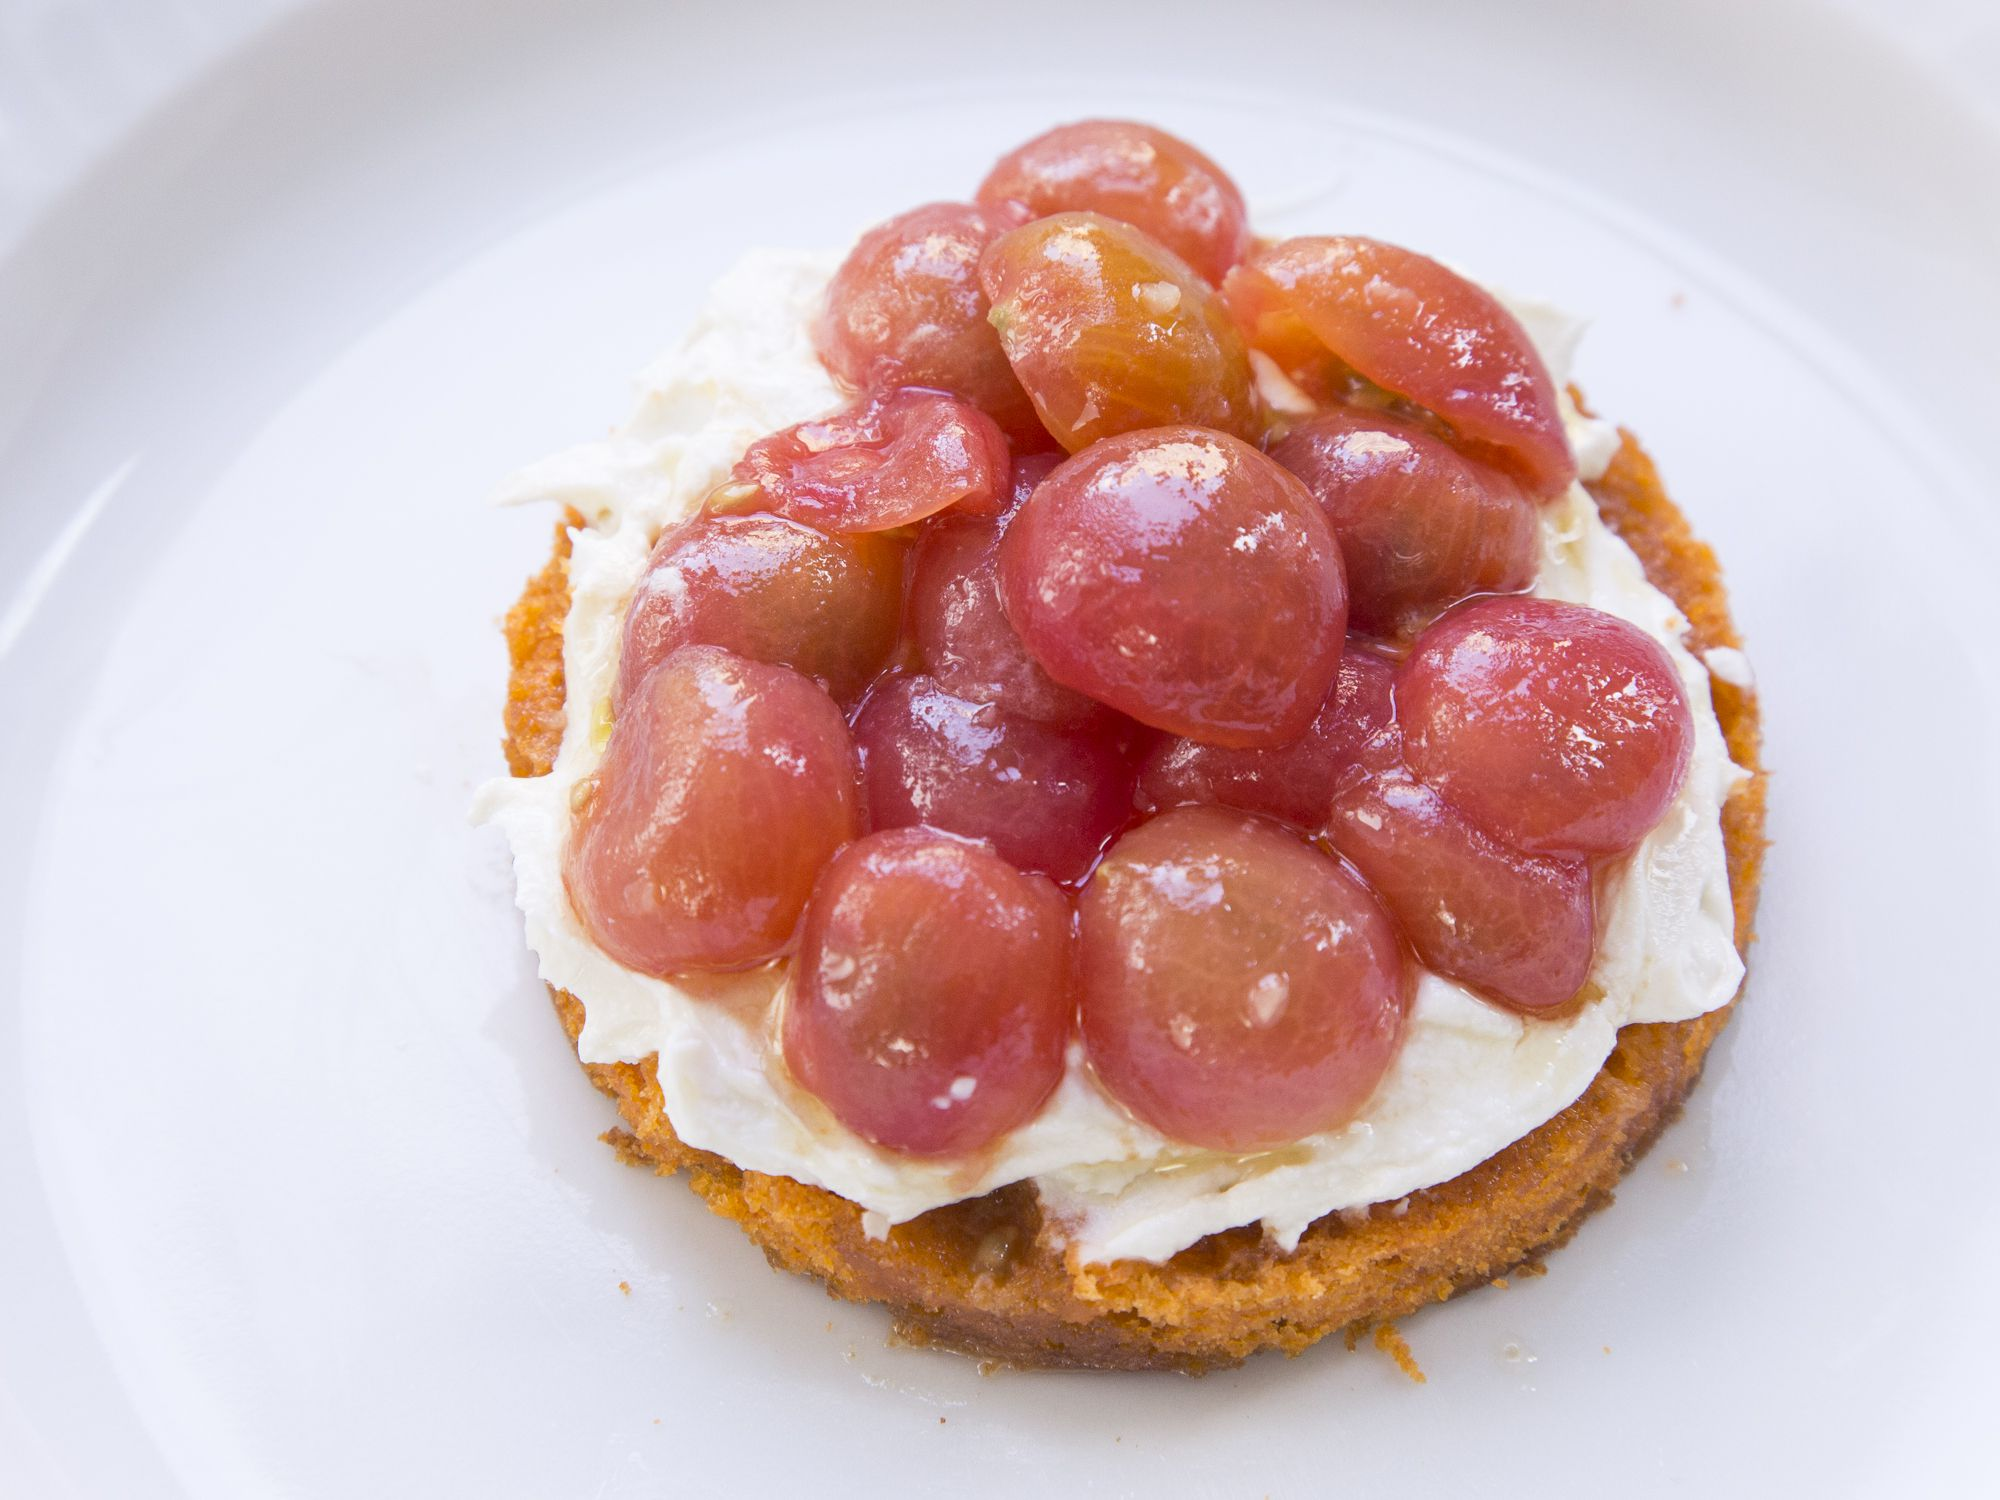 "In this recipe from Amanda Cohen, chef-owner of New York City's <a href=""http://www.dirtcandynyc.com/"">Dirt Candy</a>, tomato powder lends flavor to this savory-sweet cake, which gets topped with smoked feta cream and cherry tomato halves. Get the recipe for <a href=""https://www.saveur.com/tomato-cake-feta-recipe/"">Tomato Cake with Smoked Feta Cream and Marinated Tomatoes</a>"